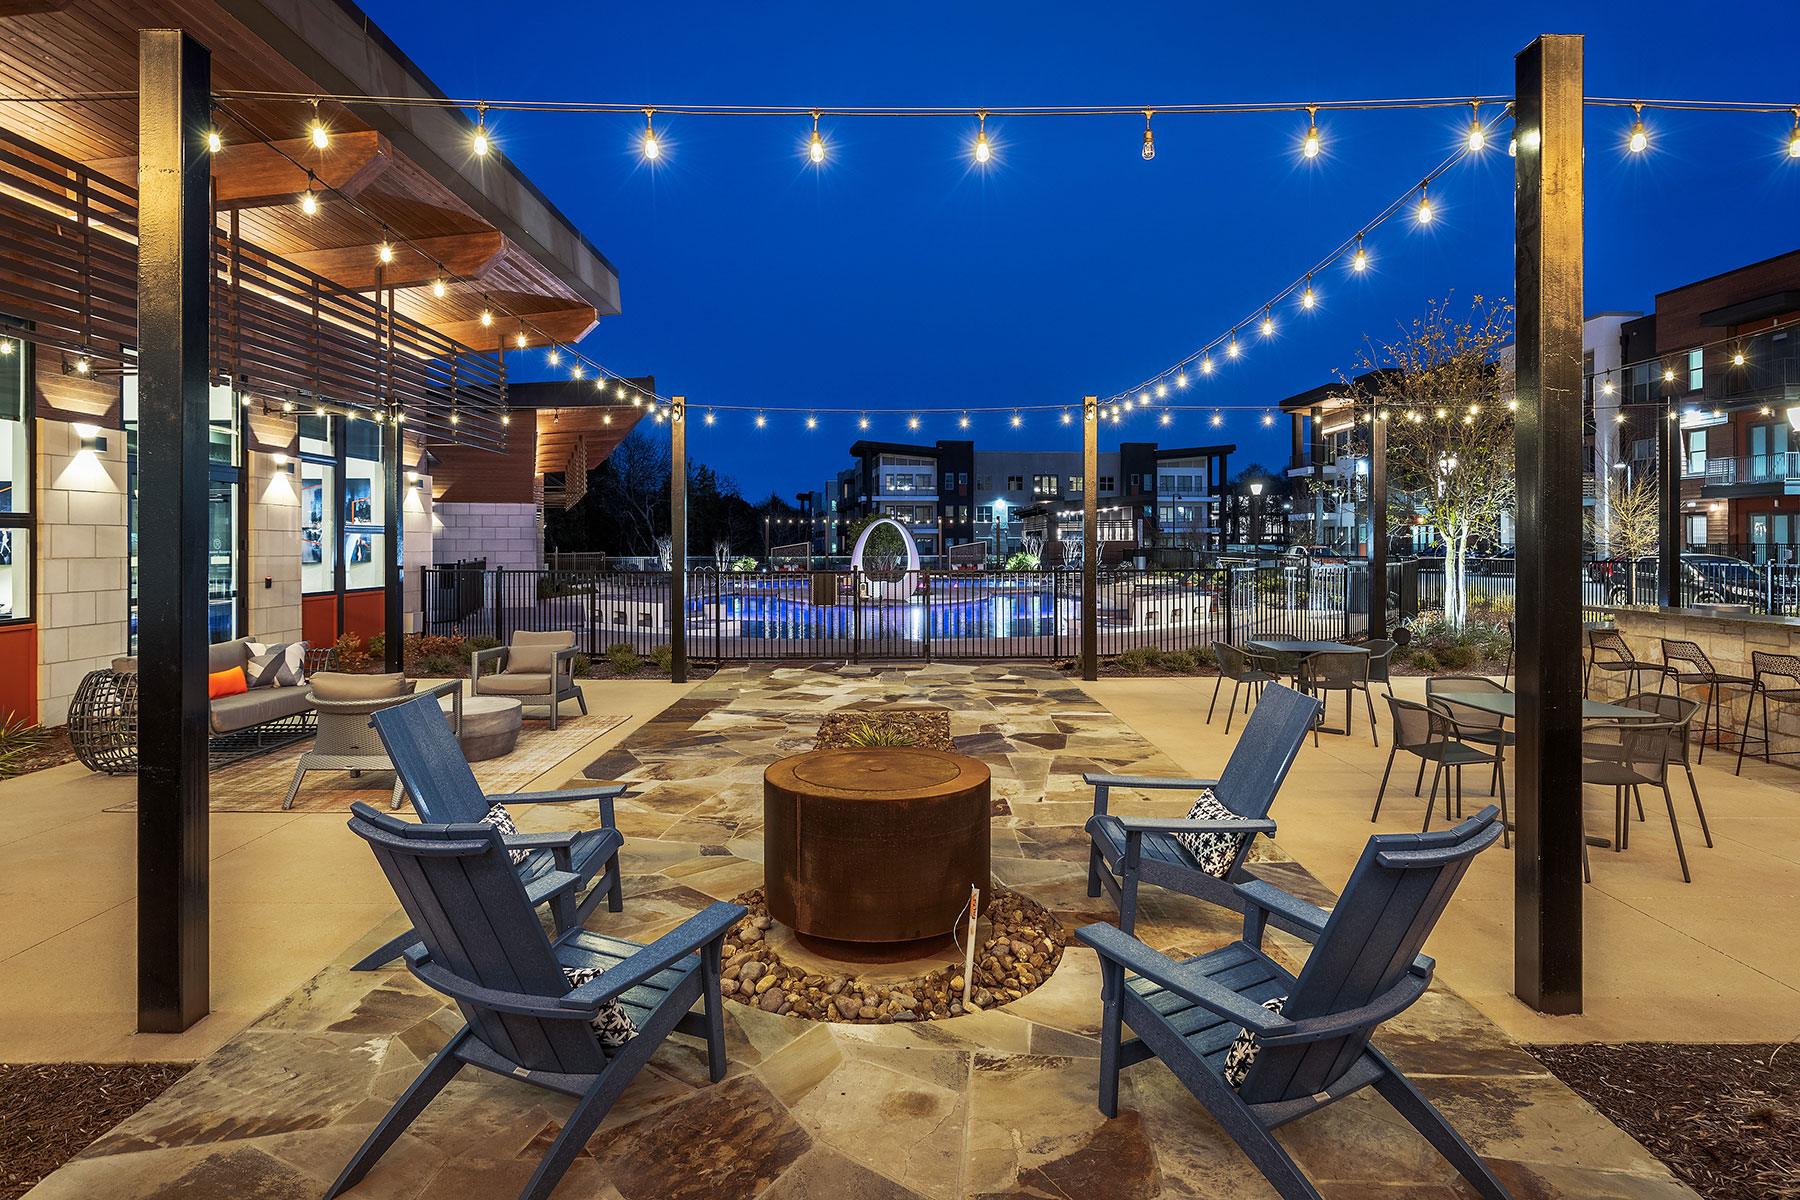 Outdoor pool patio seating area with firepit, string lights and view of the pool at night.